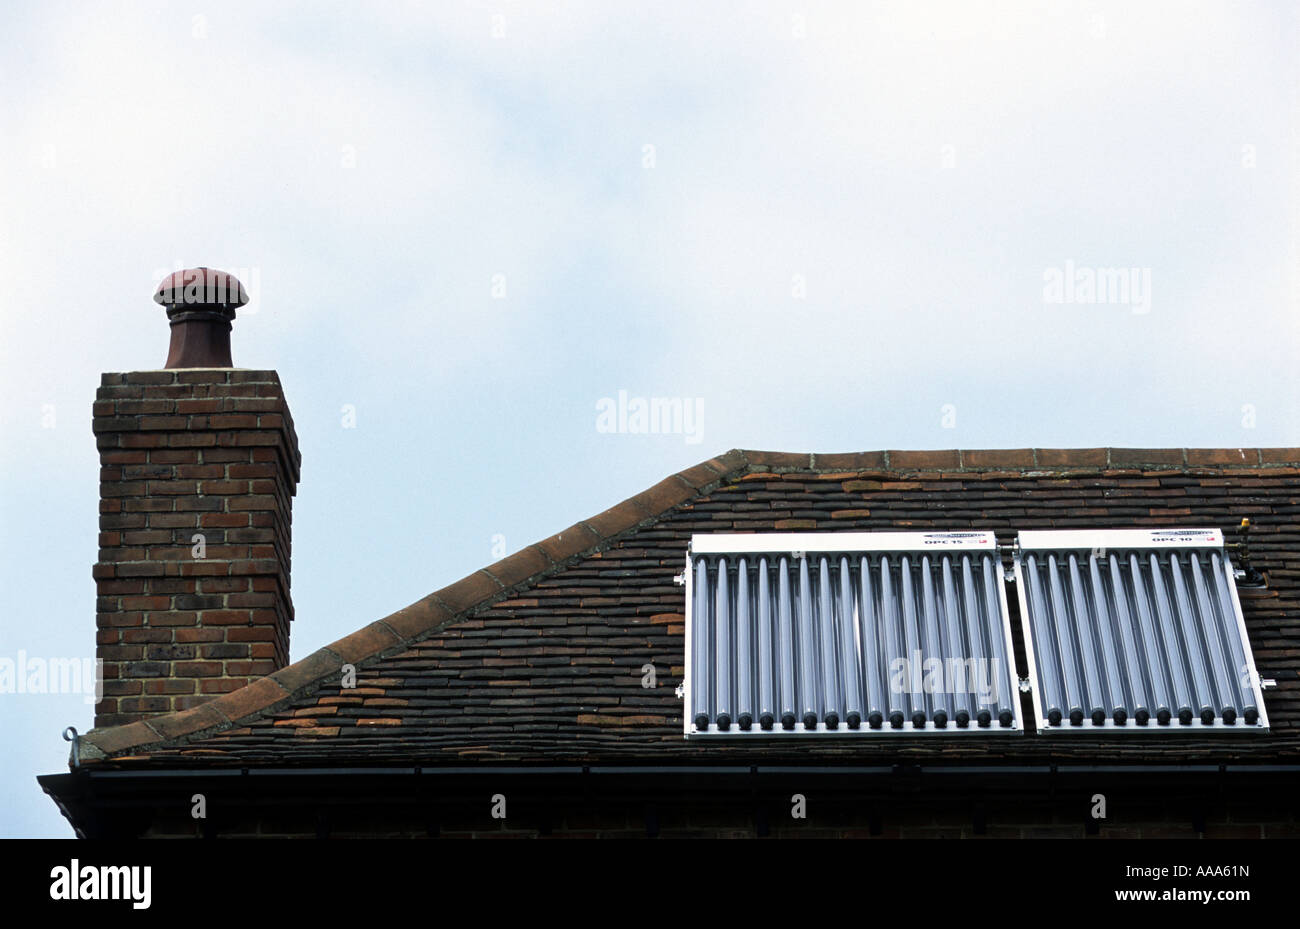 Solar thermal evacuated vacuum tubes supplying hot water to a residential propery in Braintree, Essex, UK. - Stock Image